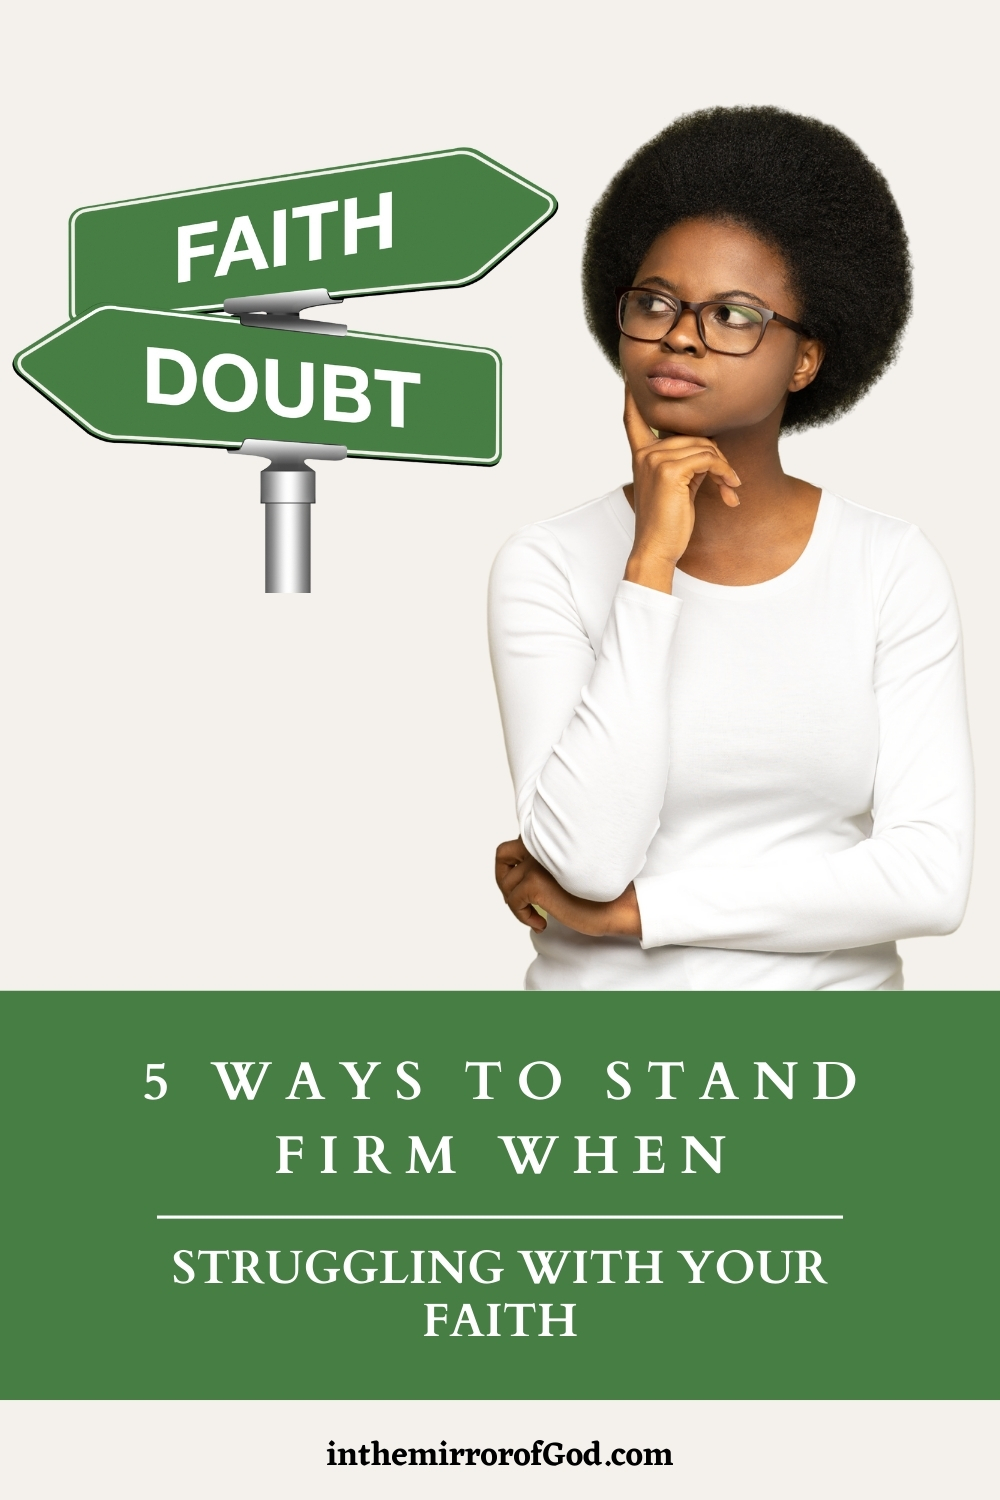 5 Ways to Stand Firm When Struggling With Your Faith